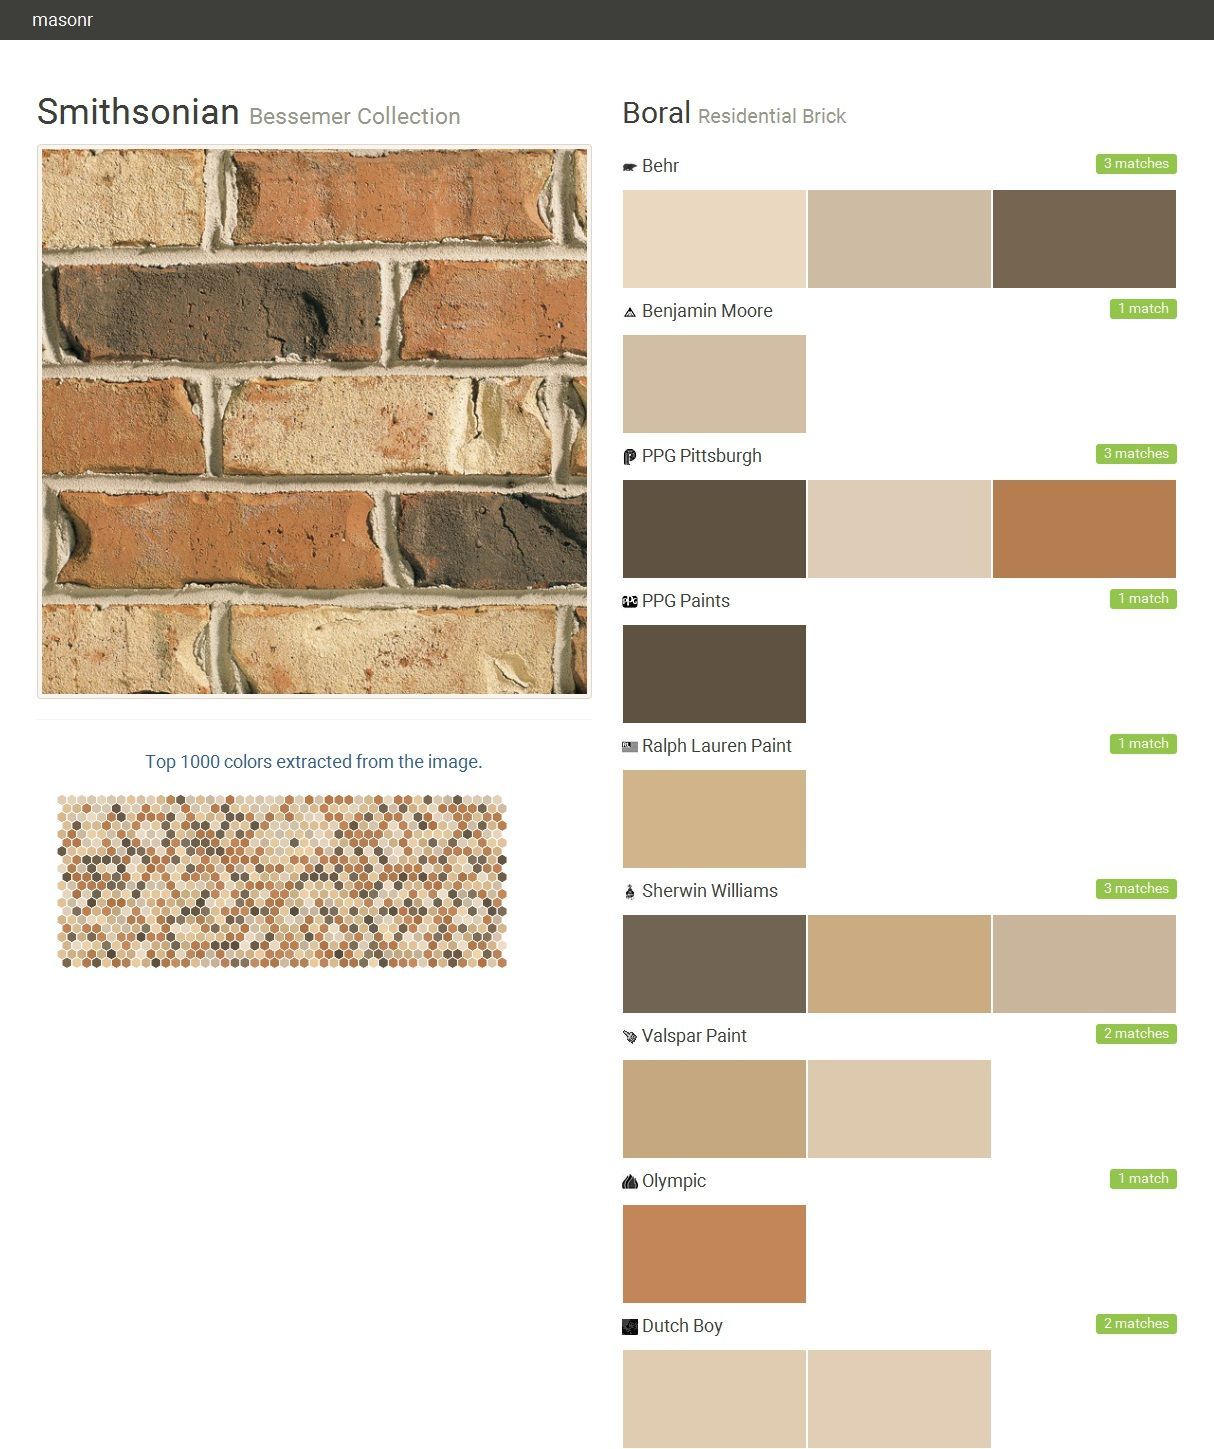 Smithsonian Bessemer Collection Residential Brick Boral Behr Benjamin Moore Ppg Paints